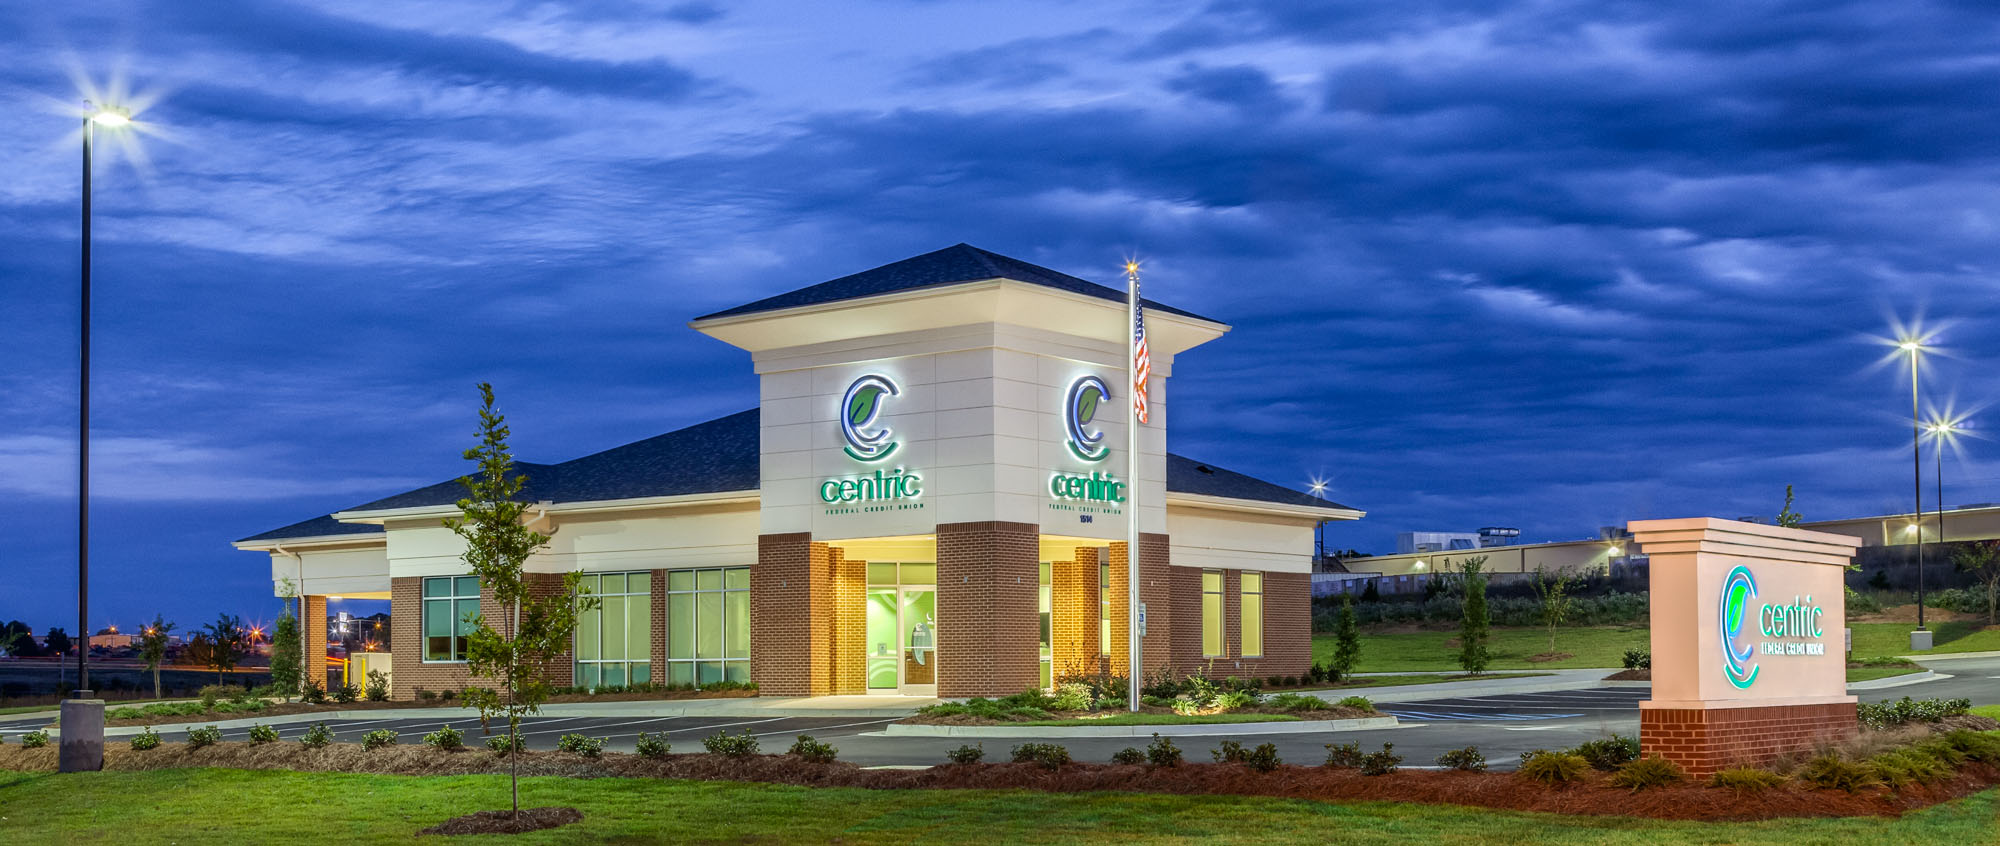 CentricFCU_Ruston La-277-Edit-Edit